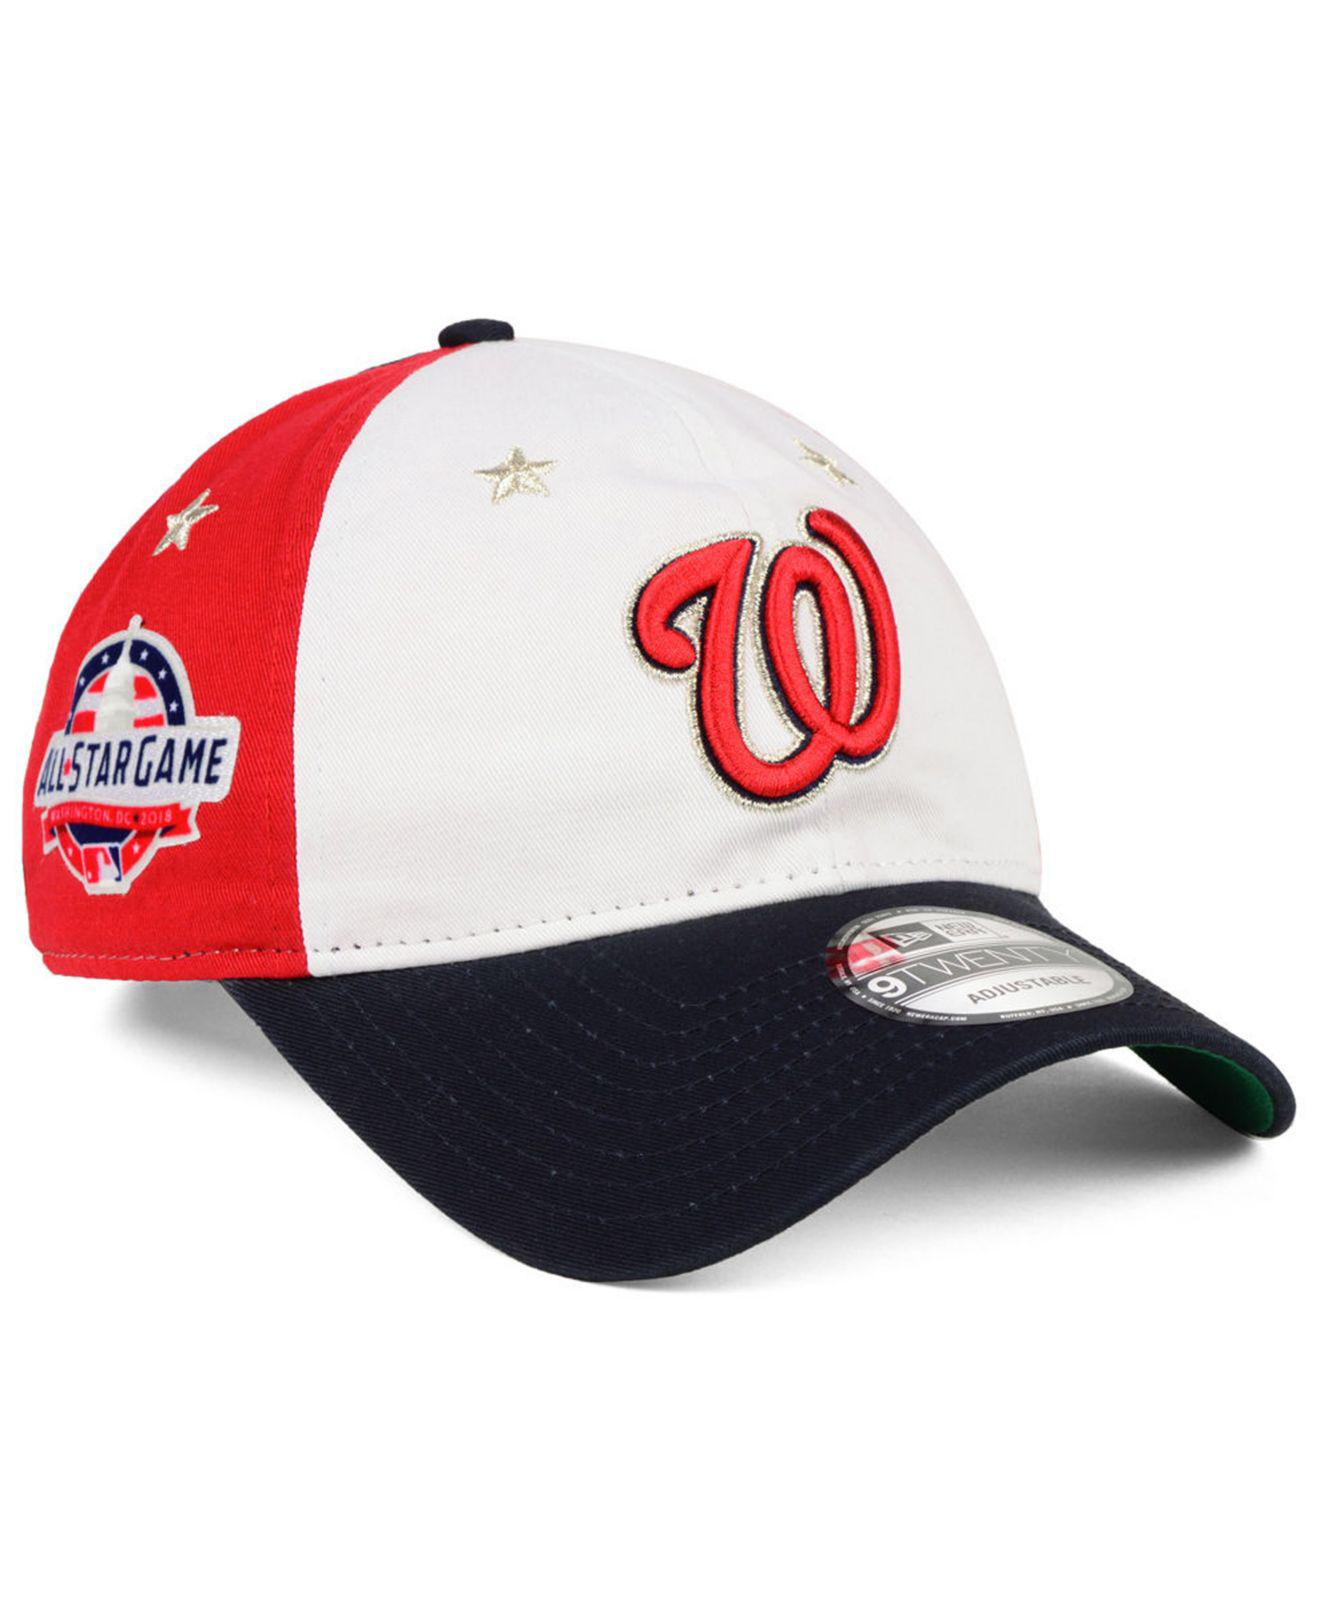 free shipping e1b4d eba33 ... order ktz. mens red washington nationals all star game 9twenty  strapback cap 2018 c7993 f26fc